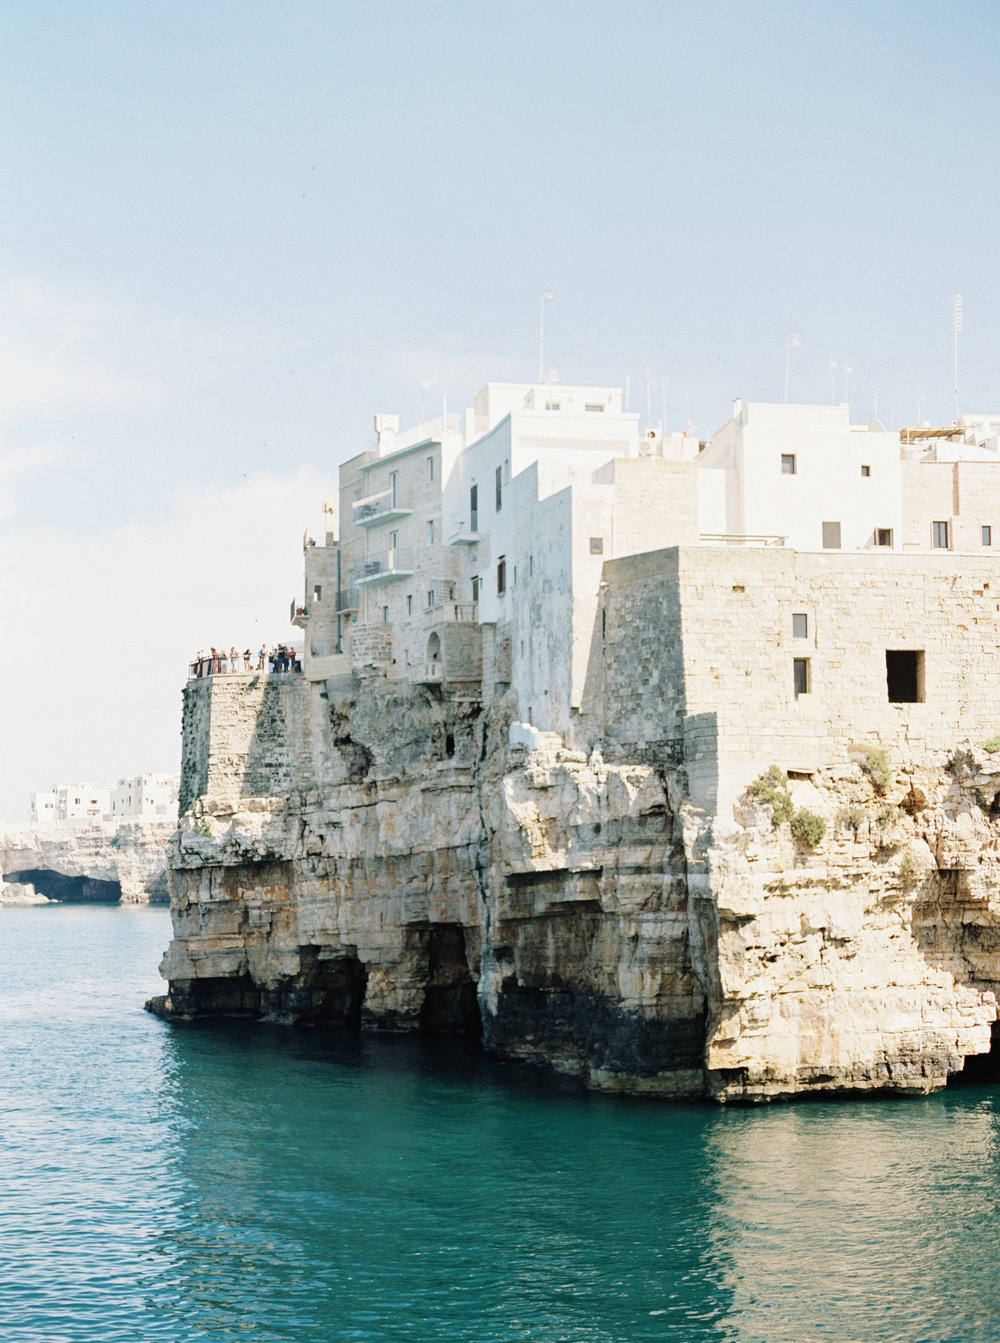 Polignano a Mare - southern Italian wedding planned by Meggie Francisco Events. Photography by Tracy Enoch, video by Innar Hunt, floral by Chiara Sperti.